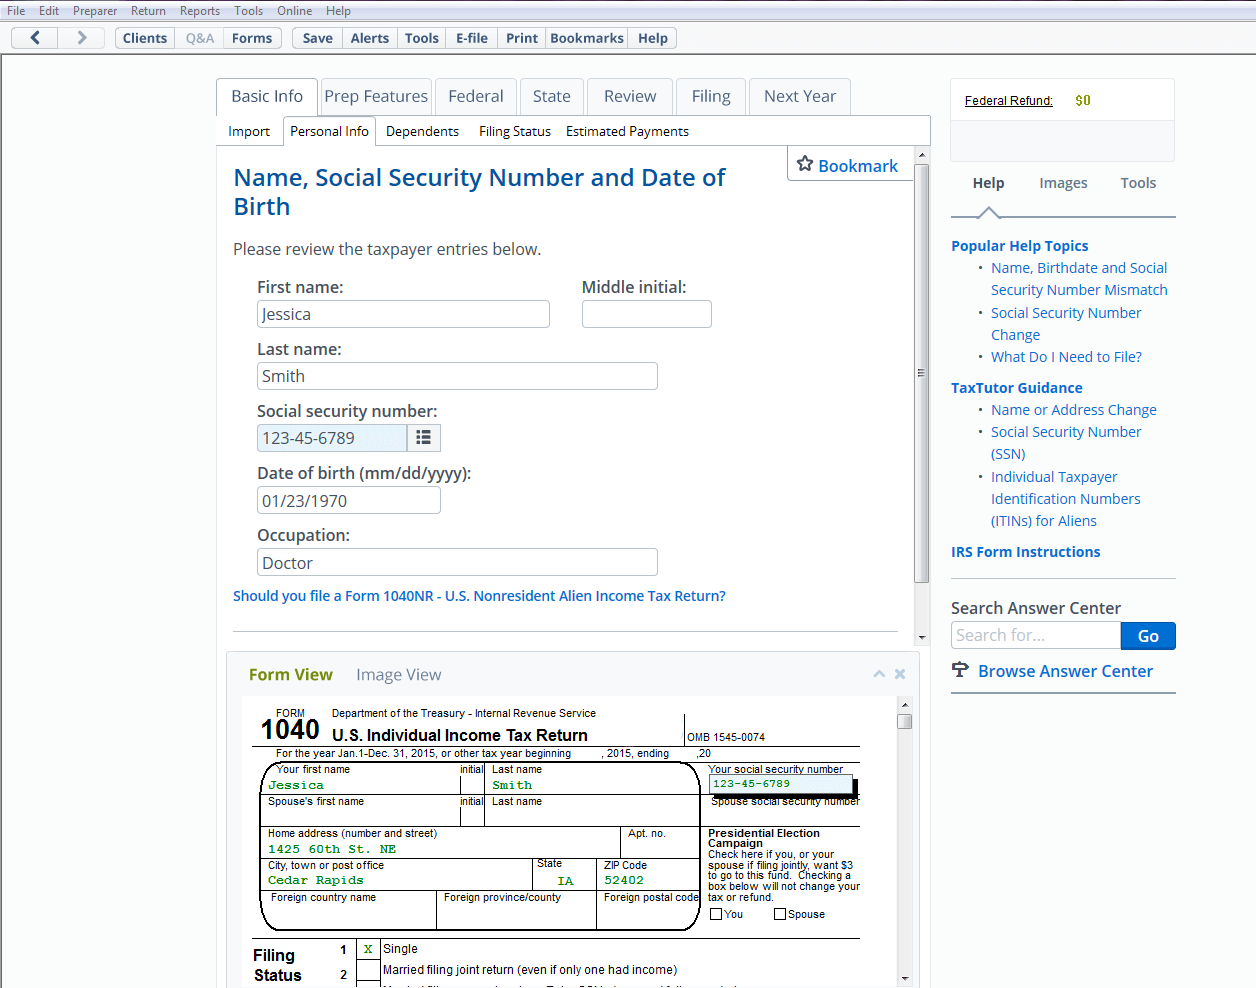 A sample personal info form having fields: Name, Social Security Number, Date of Birth and Occupation